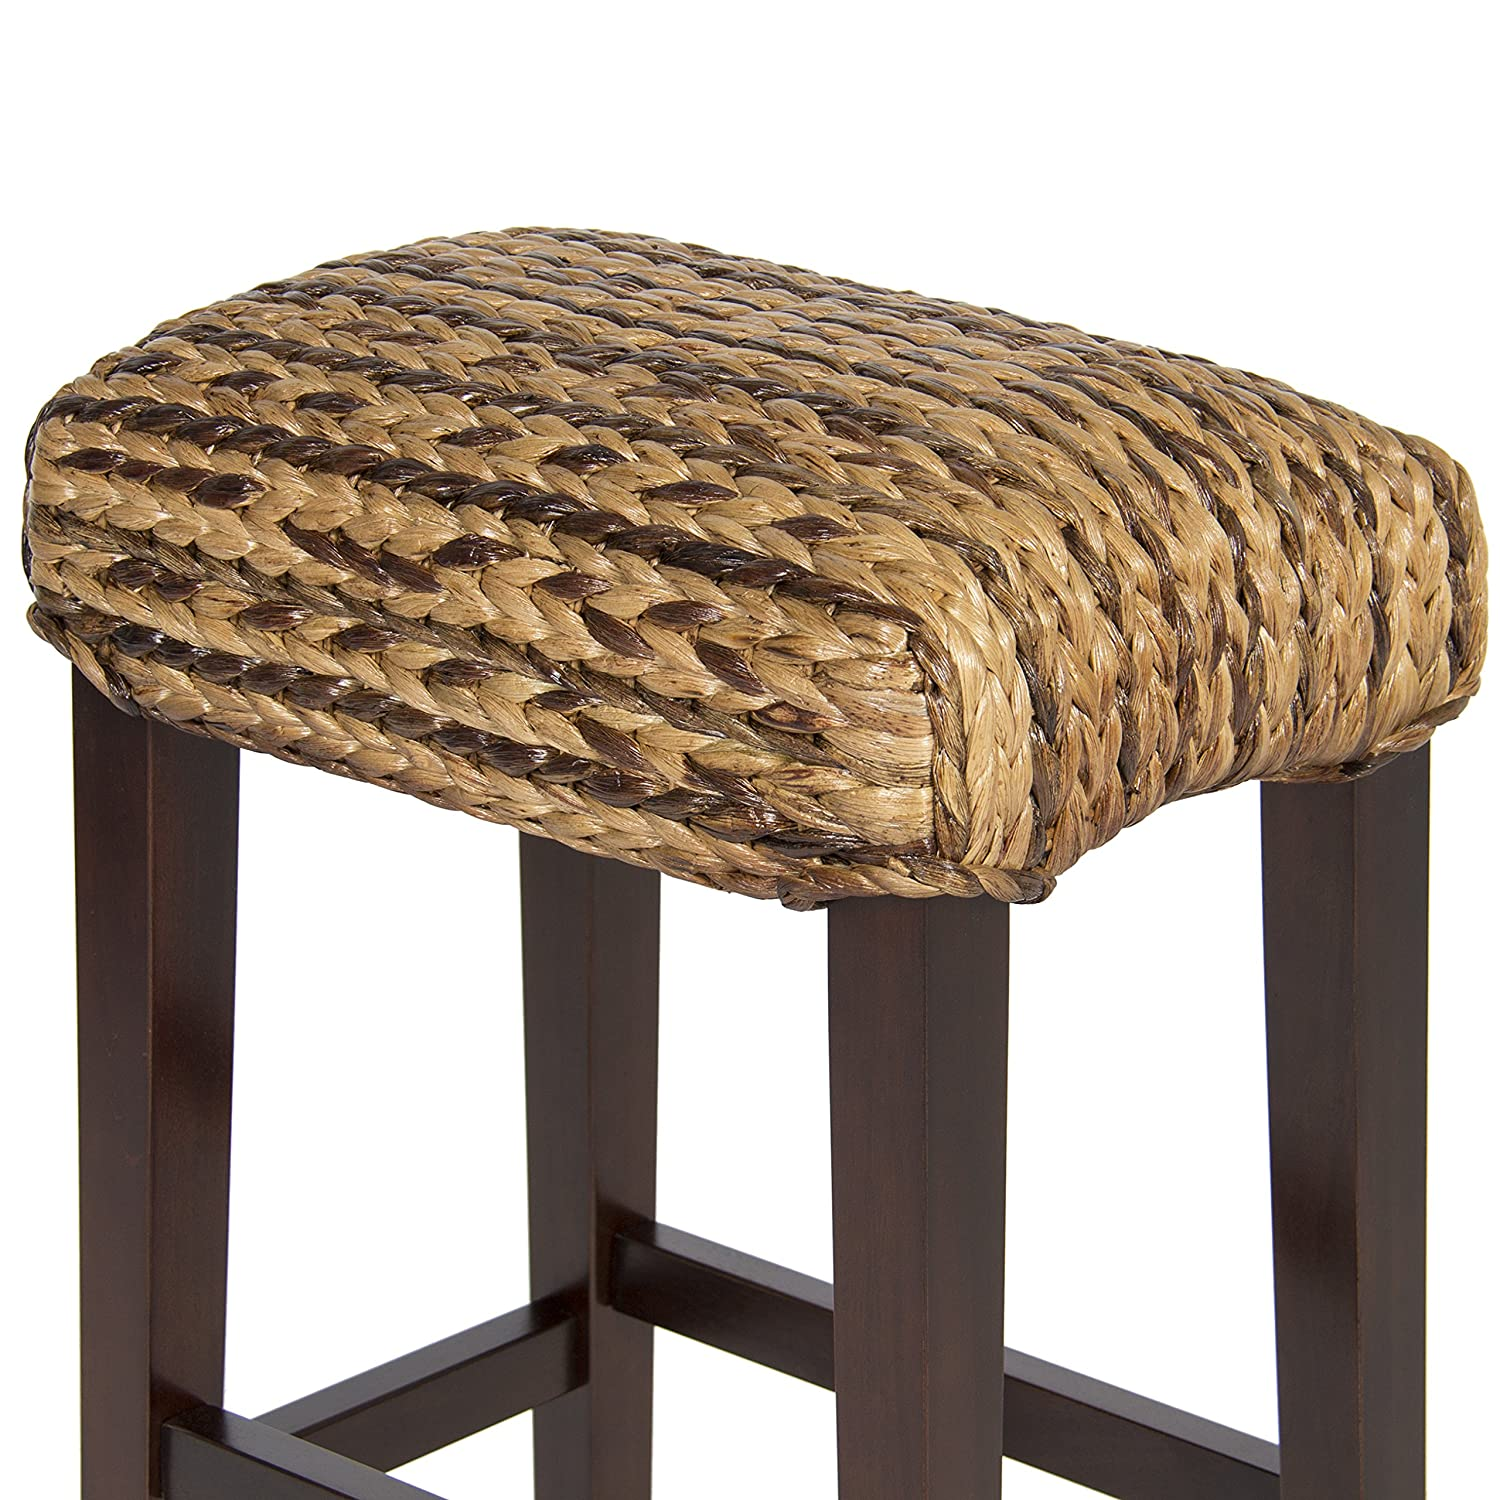 Uncategorized Woven Stools amazon com best choice products bcp set of 2 hand woven seagrass bar stools mahogany wood frame height home kitchen